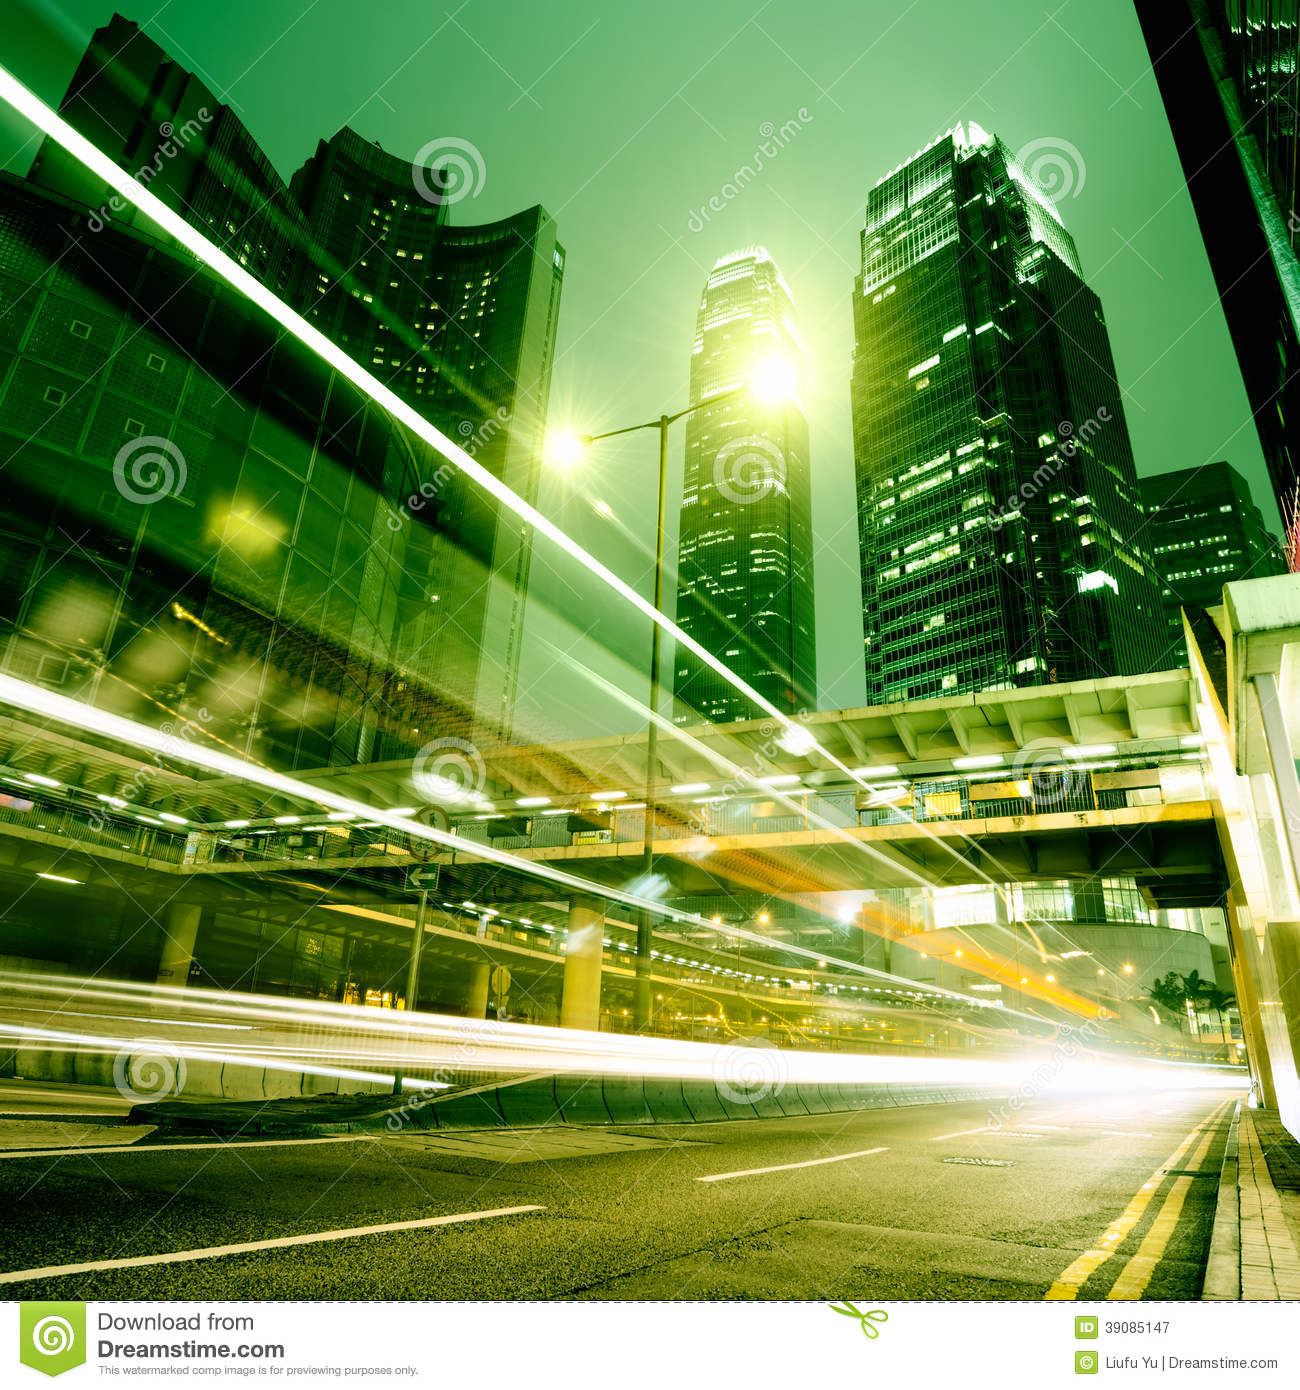 Fast Moving Cars Stock Image. Image Of Evening, District